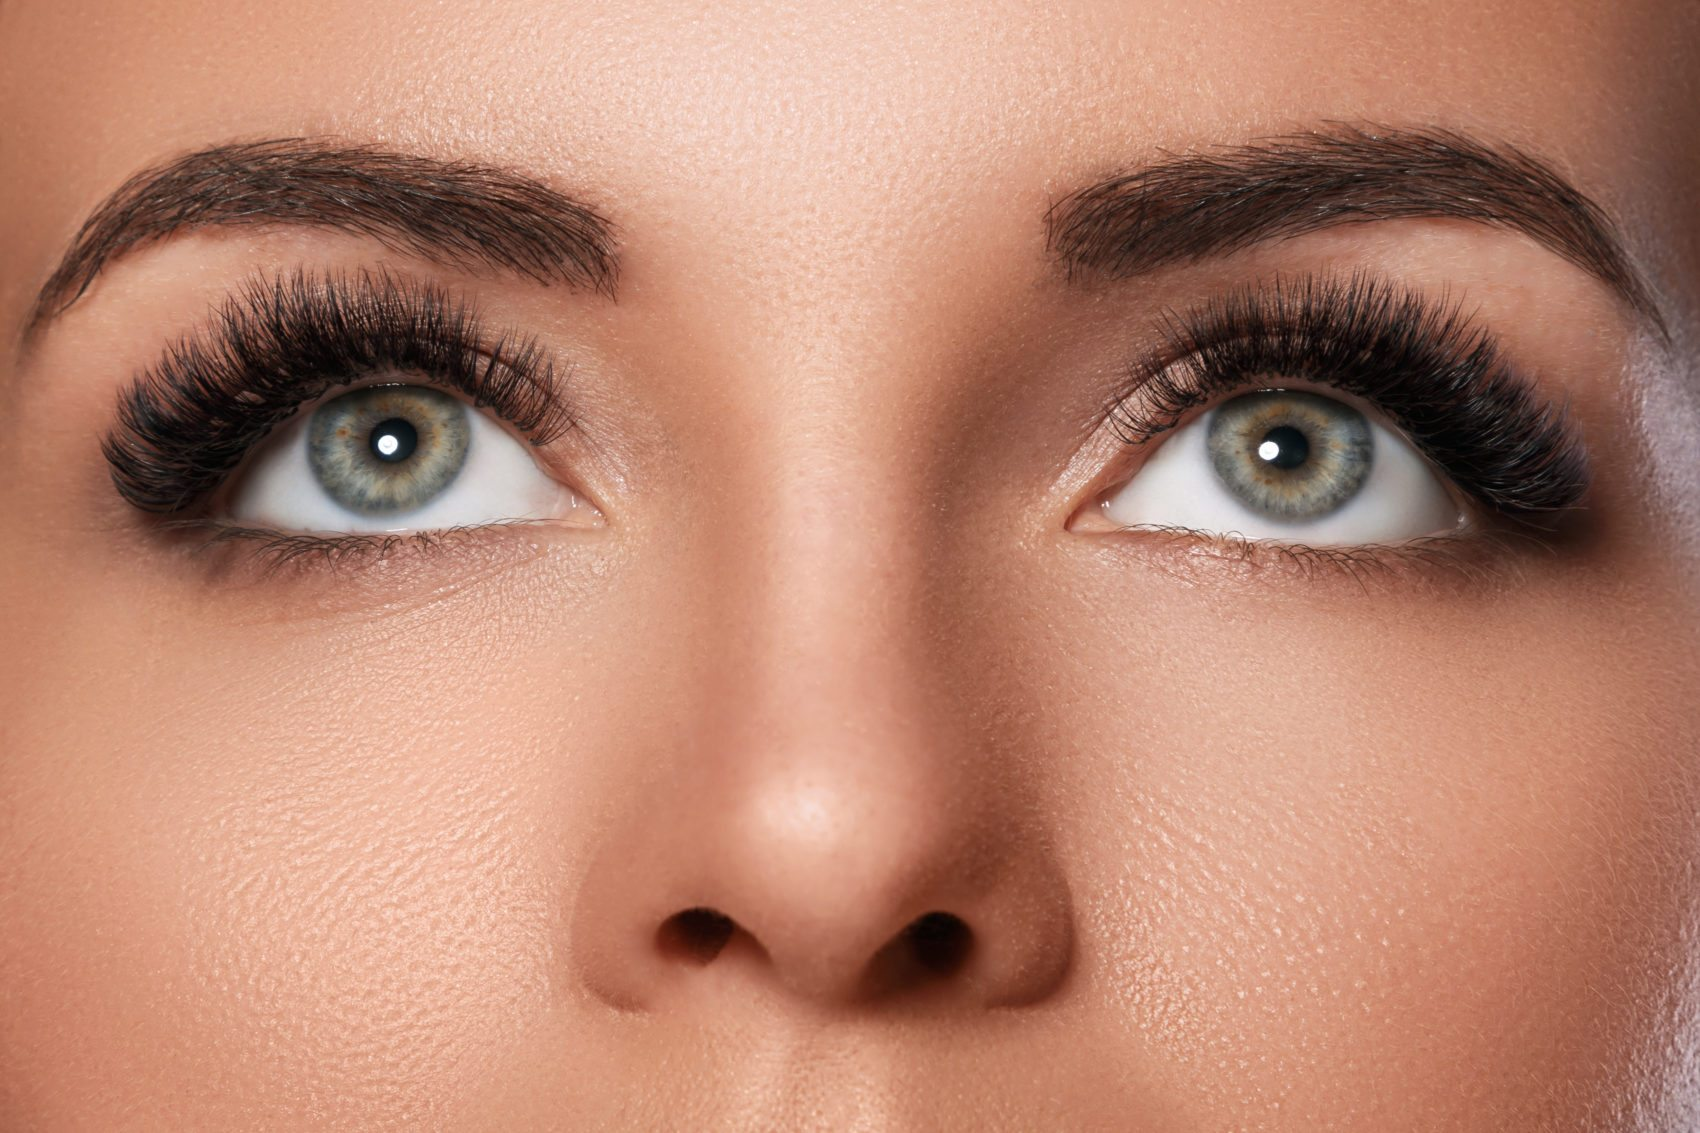 Microblading Vs Eyebrow Tattooing 4 Differences Dfw Microblading